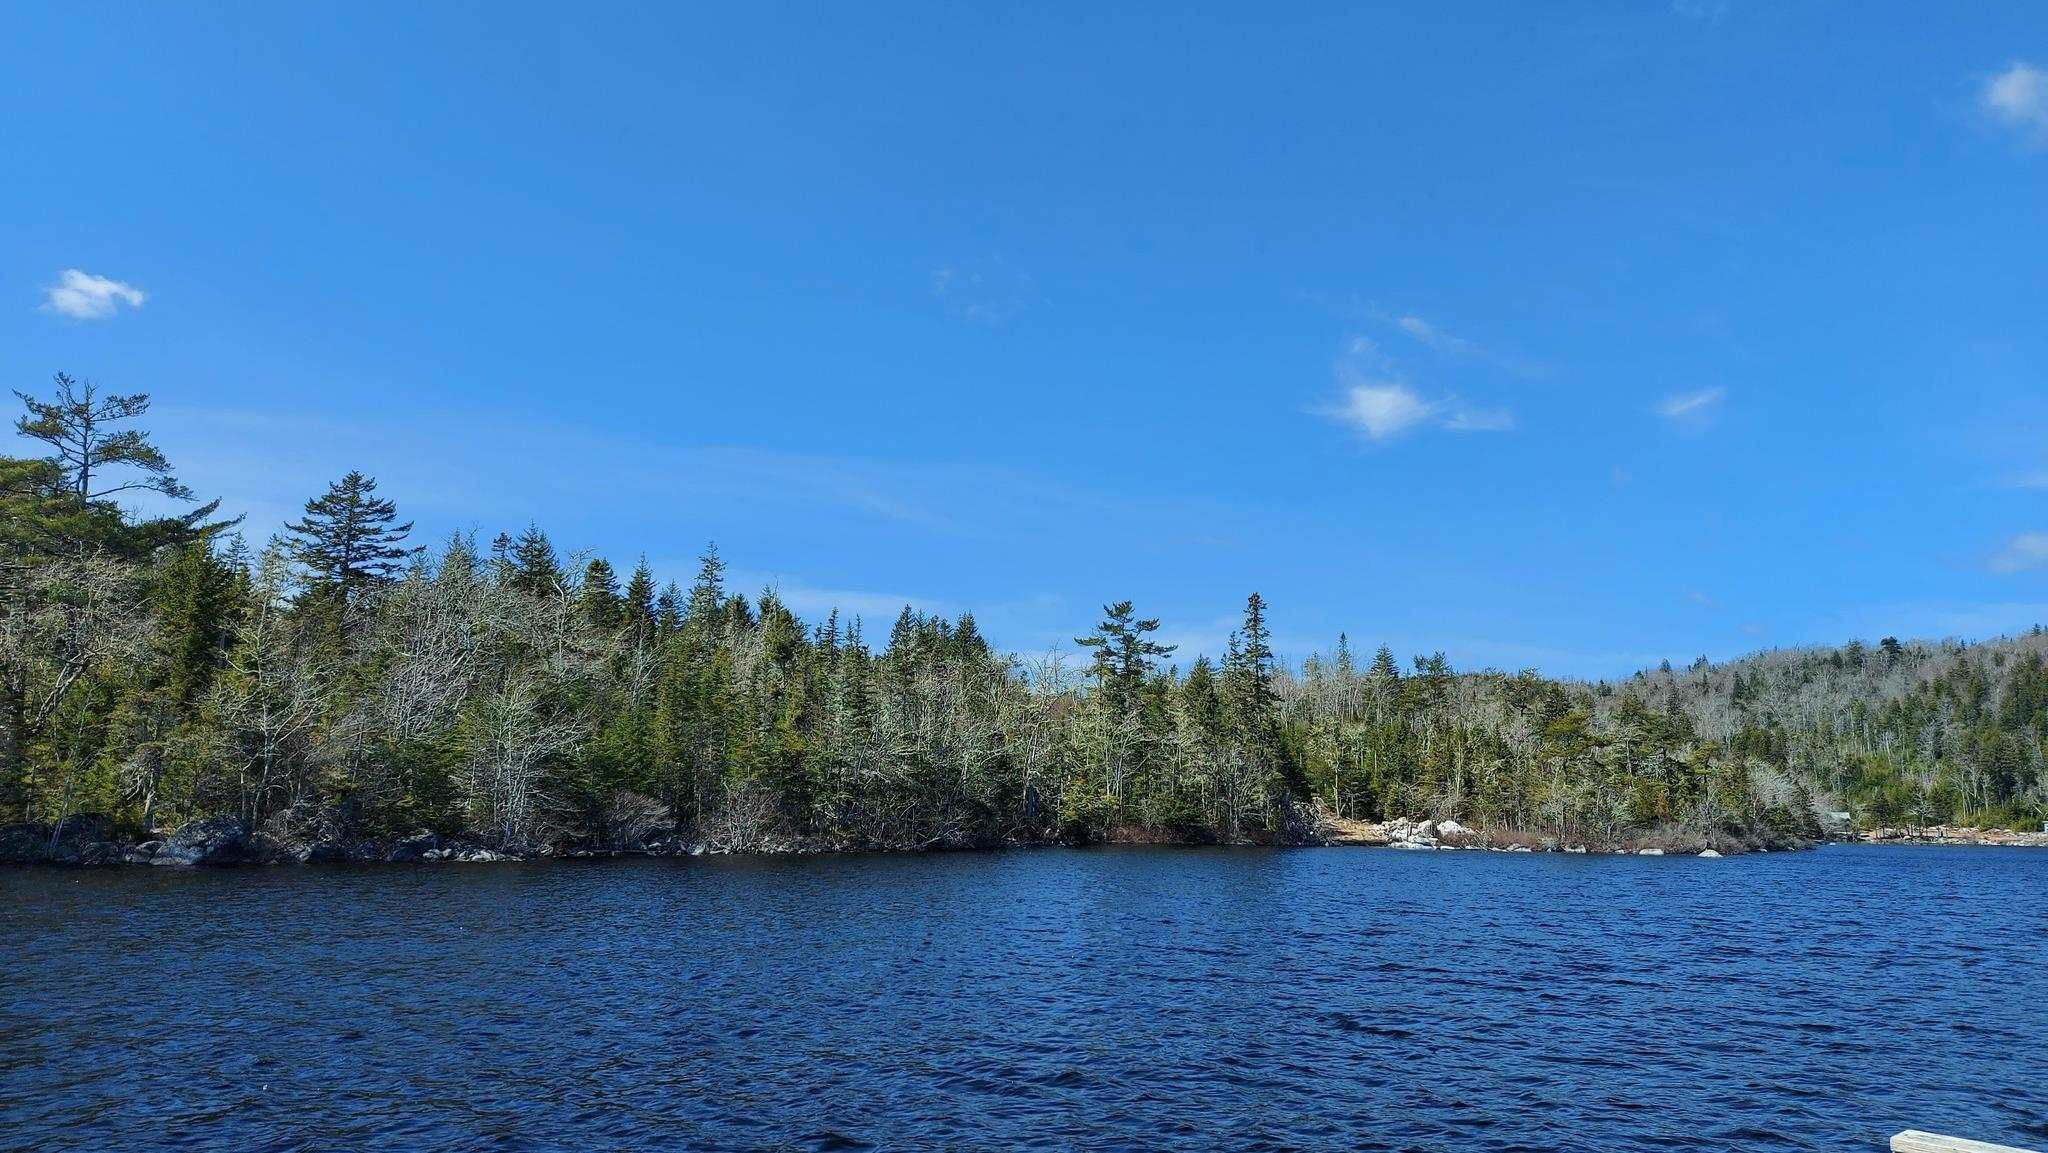 Photo 4: Photos: Lot 6 1212 Lake Charlotte Way in Upper Lakeville: 35-Halifax County East Vacant Land for sale (Halifax-Dartmouth)  : MLS®# 202113698